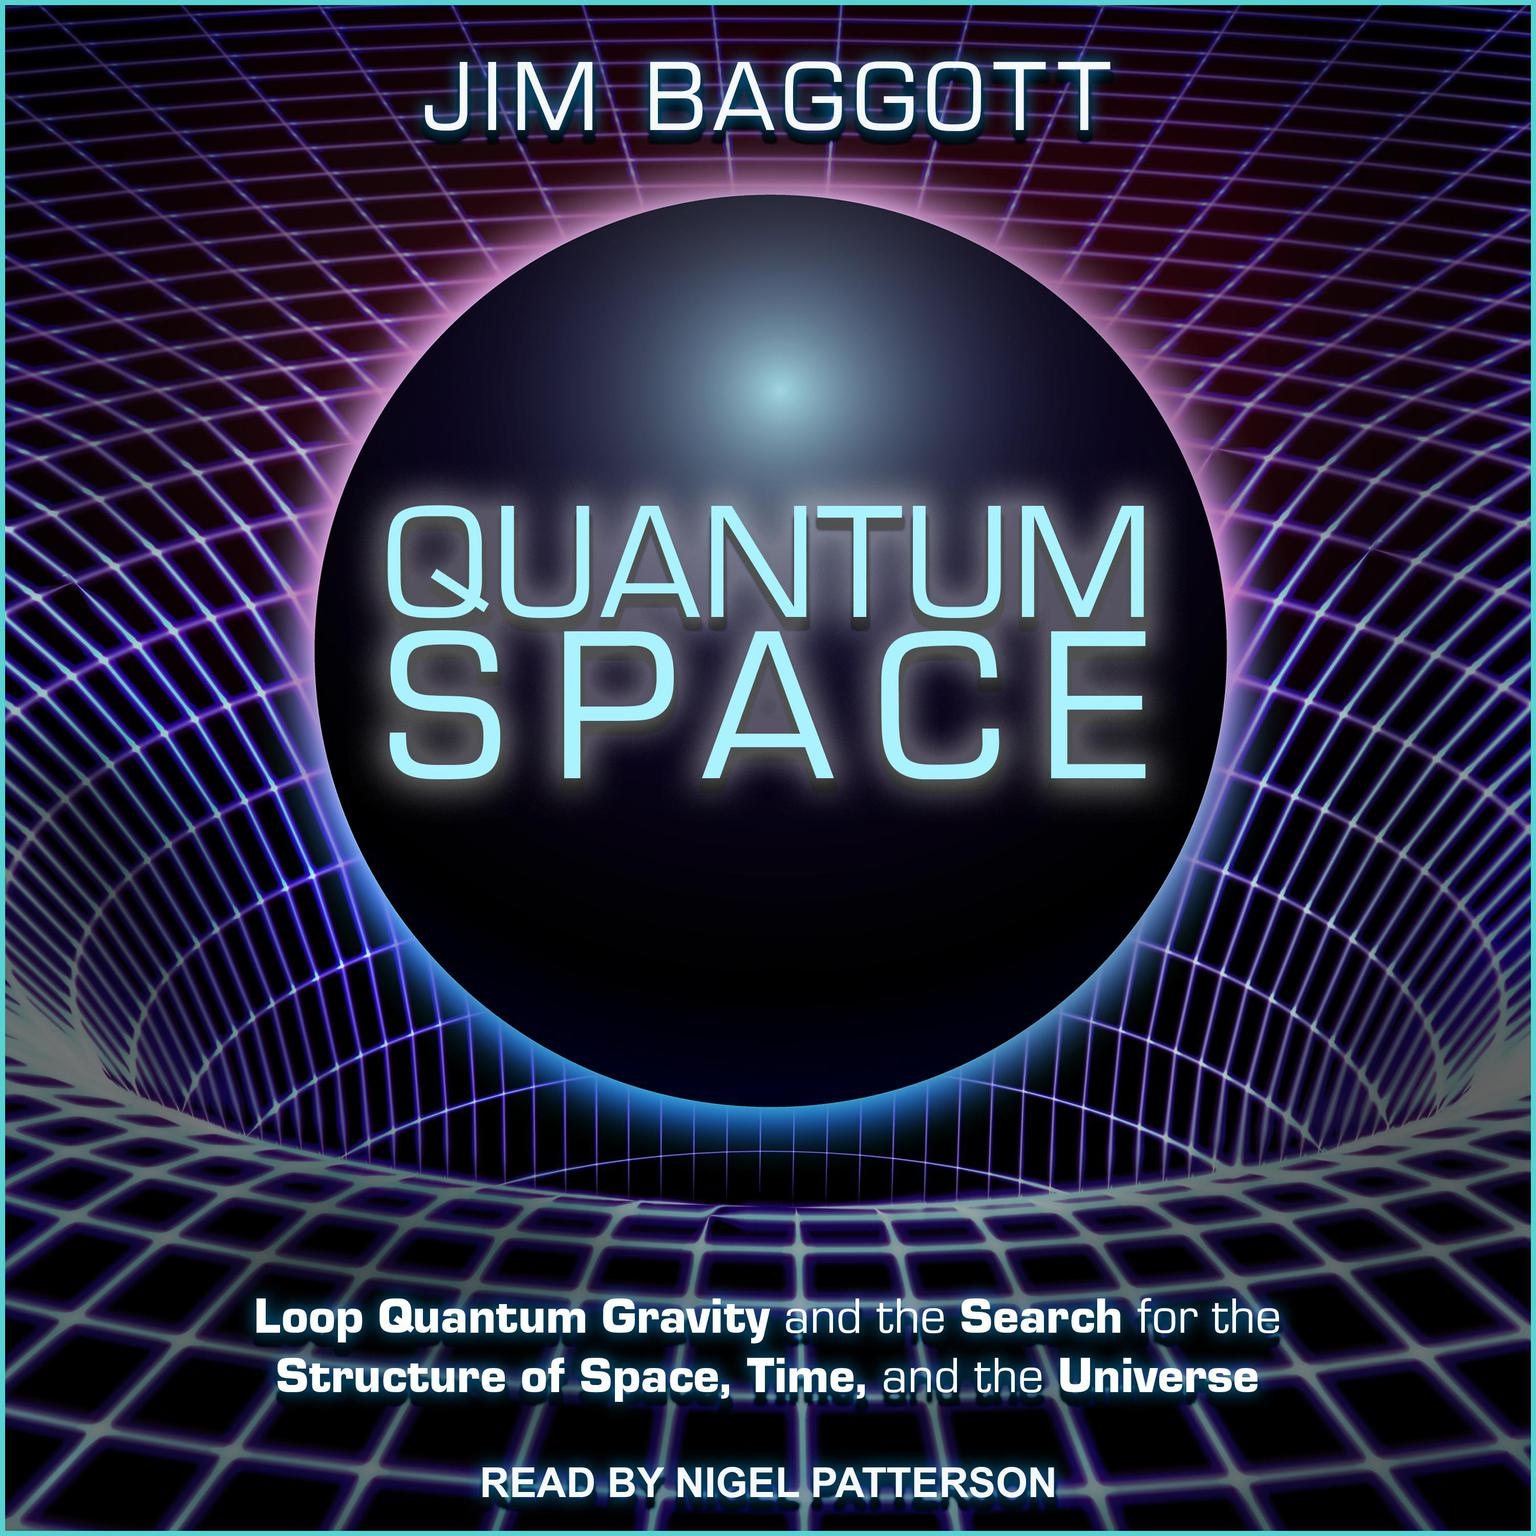 Printable Quantum Space: Loop Quantum Gravity and the Search for the Structure of Space, Time, and the Universe Audiobook Cover Art